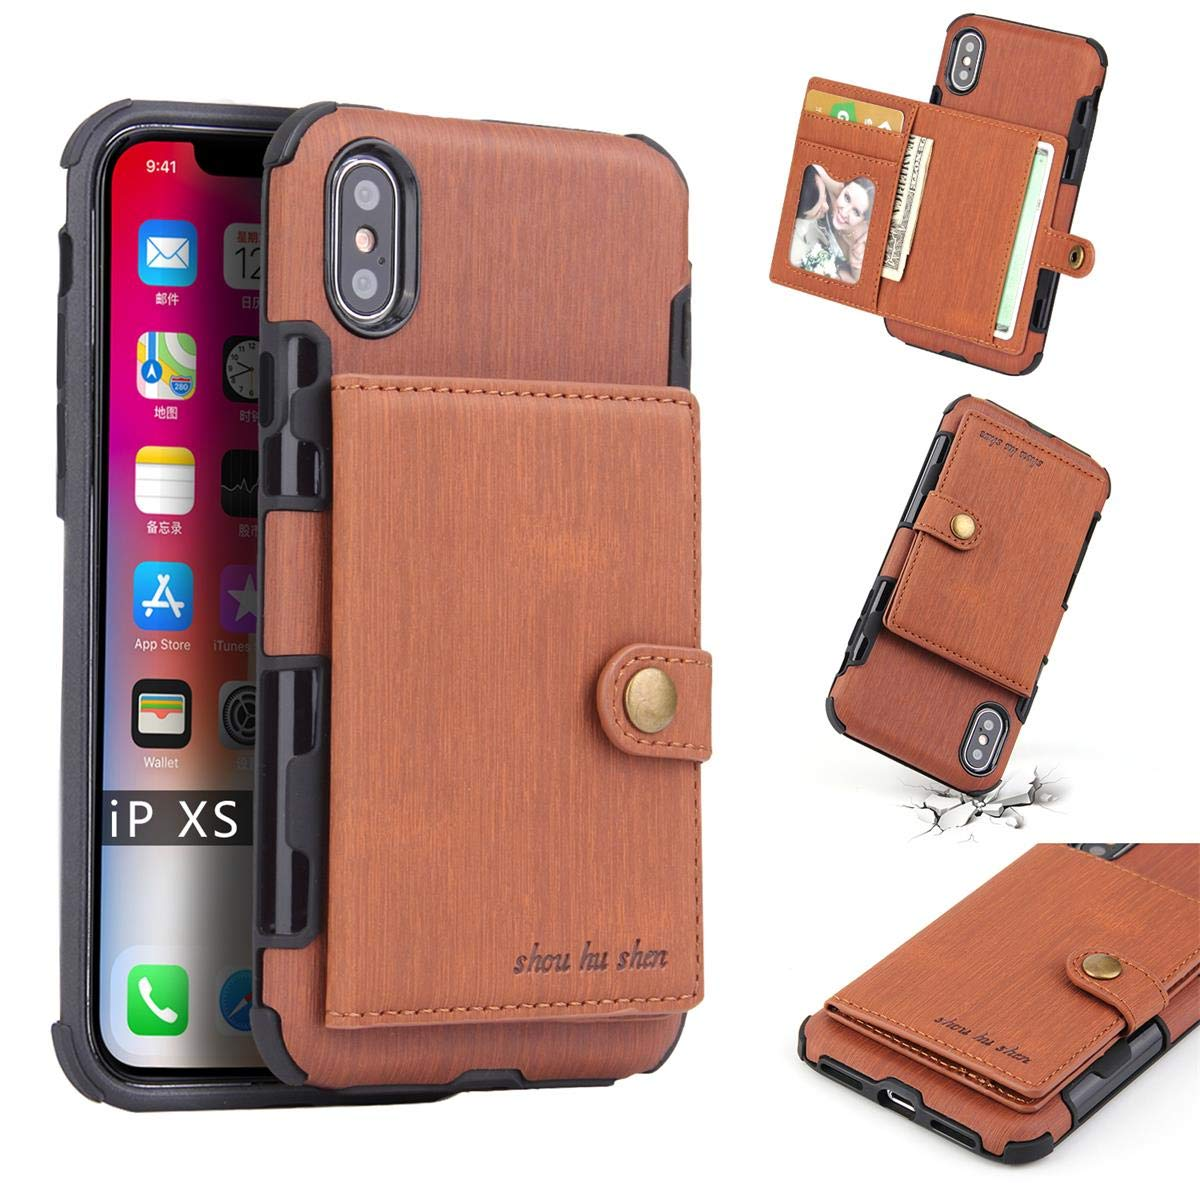 DAMONDY iPhone Xs Case,iPhone X Case,Luxury Brushed Wallet Card Holders Slot Design Cover Soft Shockproof Bumper Premium Leather Magnetic Protective Case for iPhone Xs/X-Brown by DAMONDY